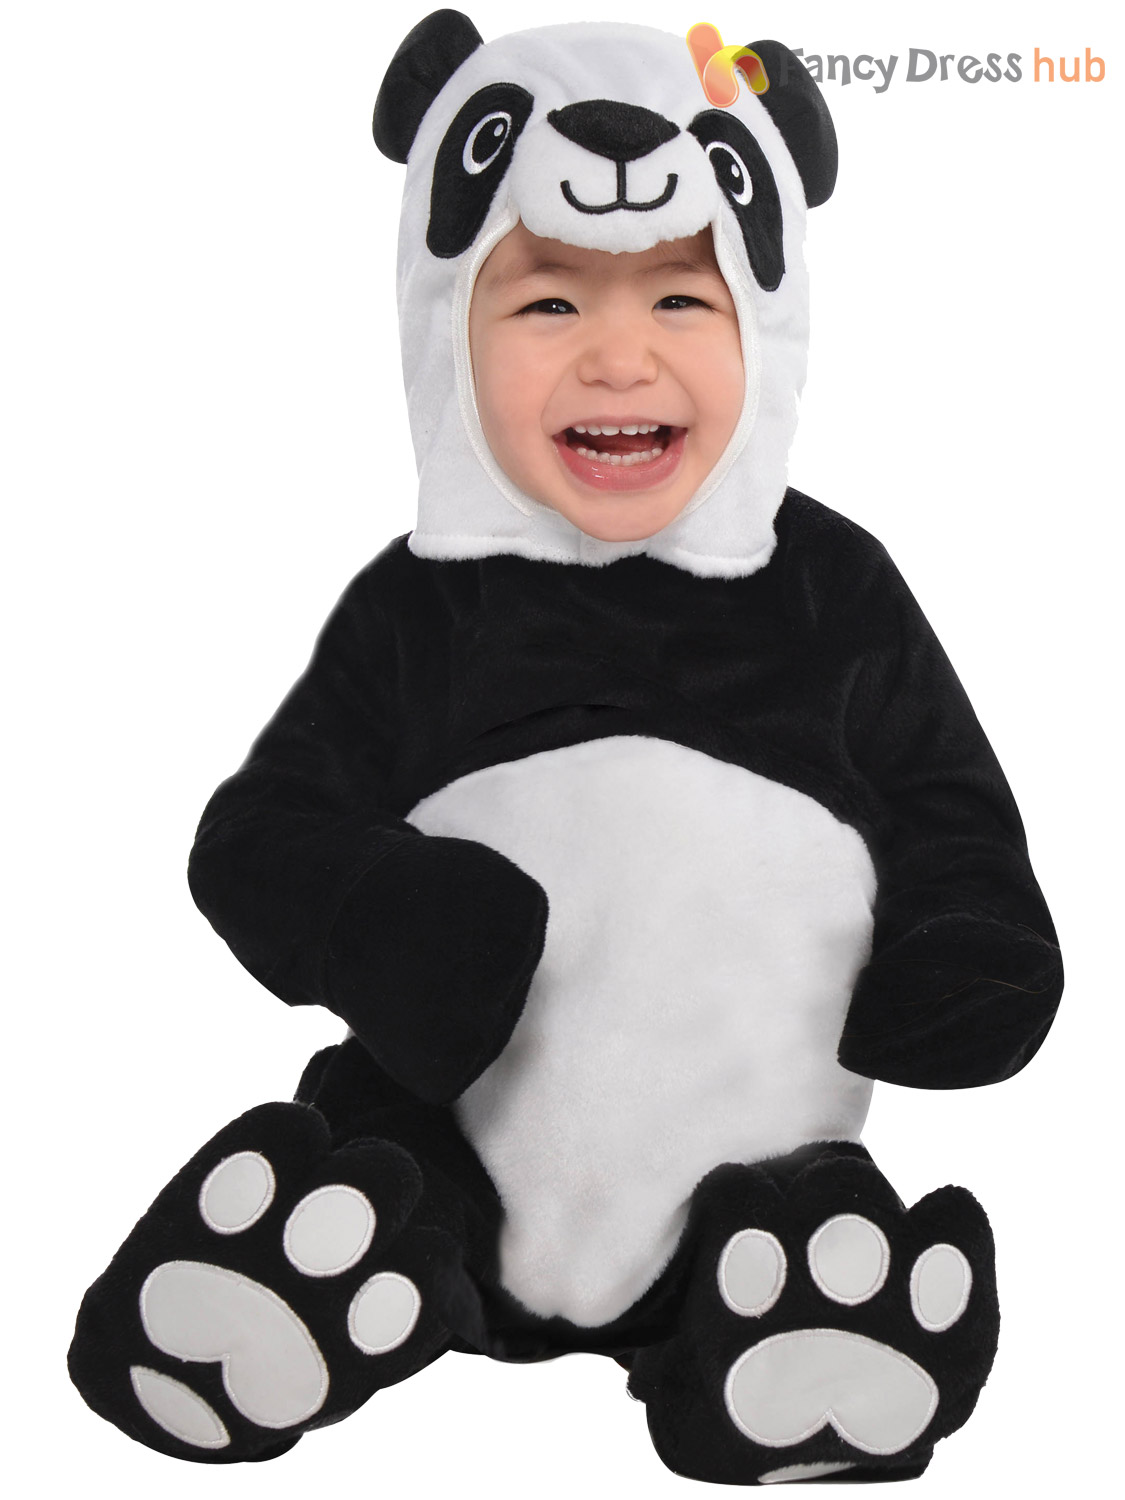 Baby-Toddler-Animal-Costume-Boy-Girl-Zoo-Jungle-Fancy-Dress-Infant-Jumpsuit-Kids thumbnail 23